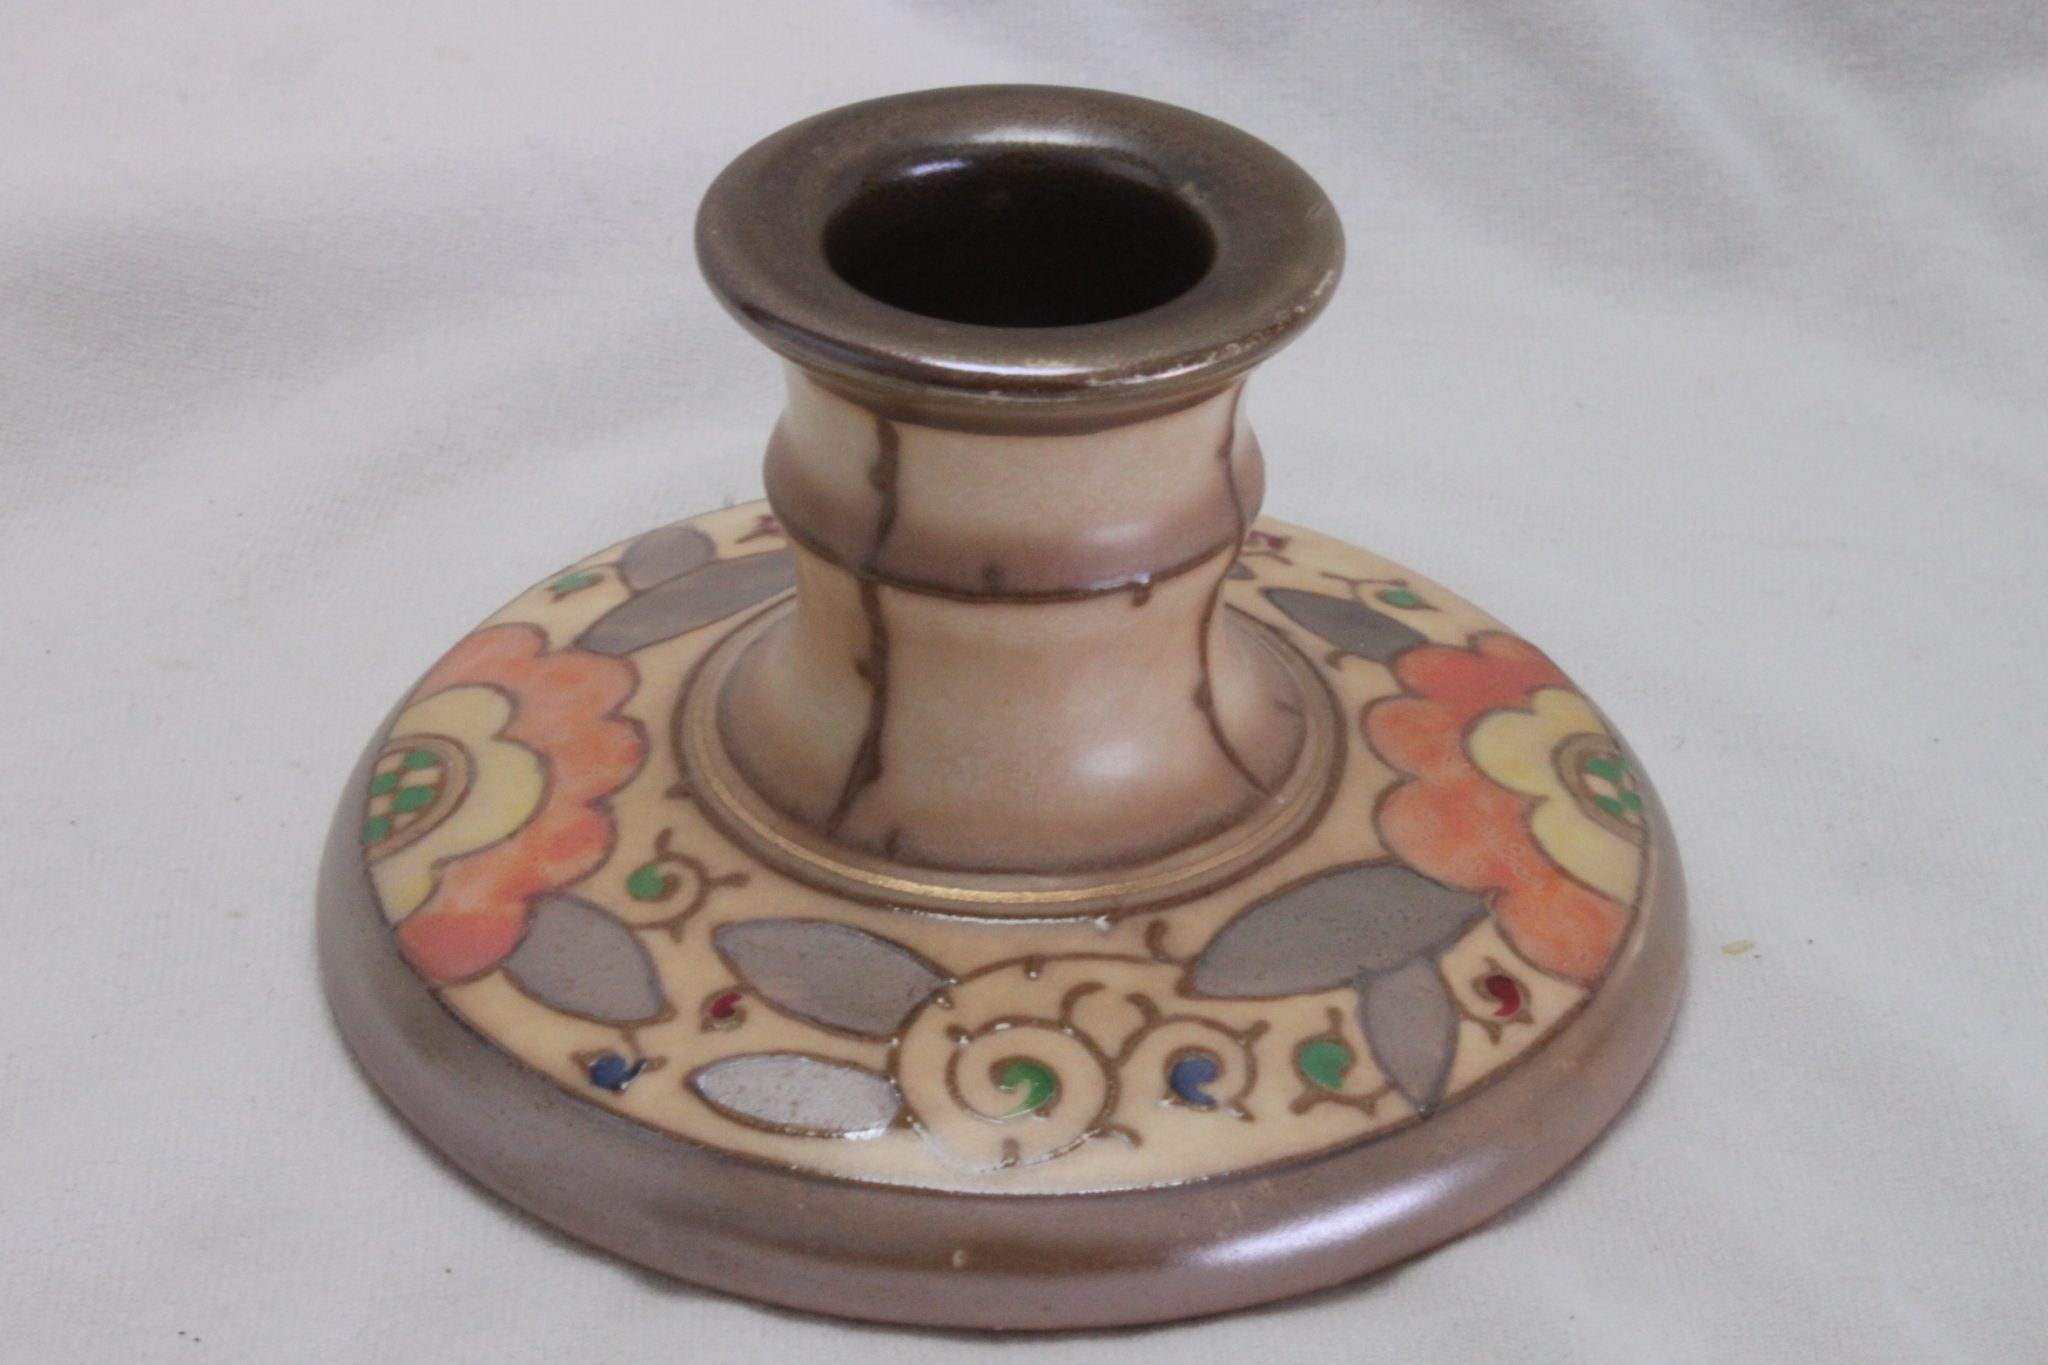 Candle holder by Charlotte Rhead pattern TL 3